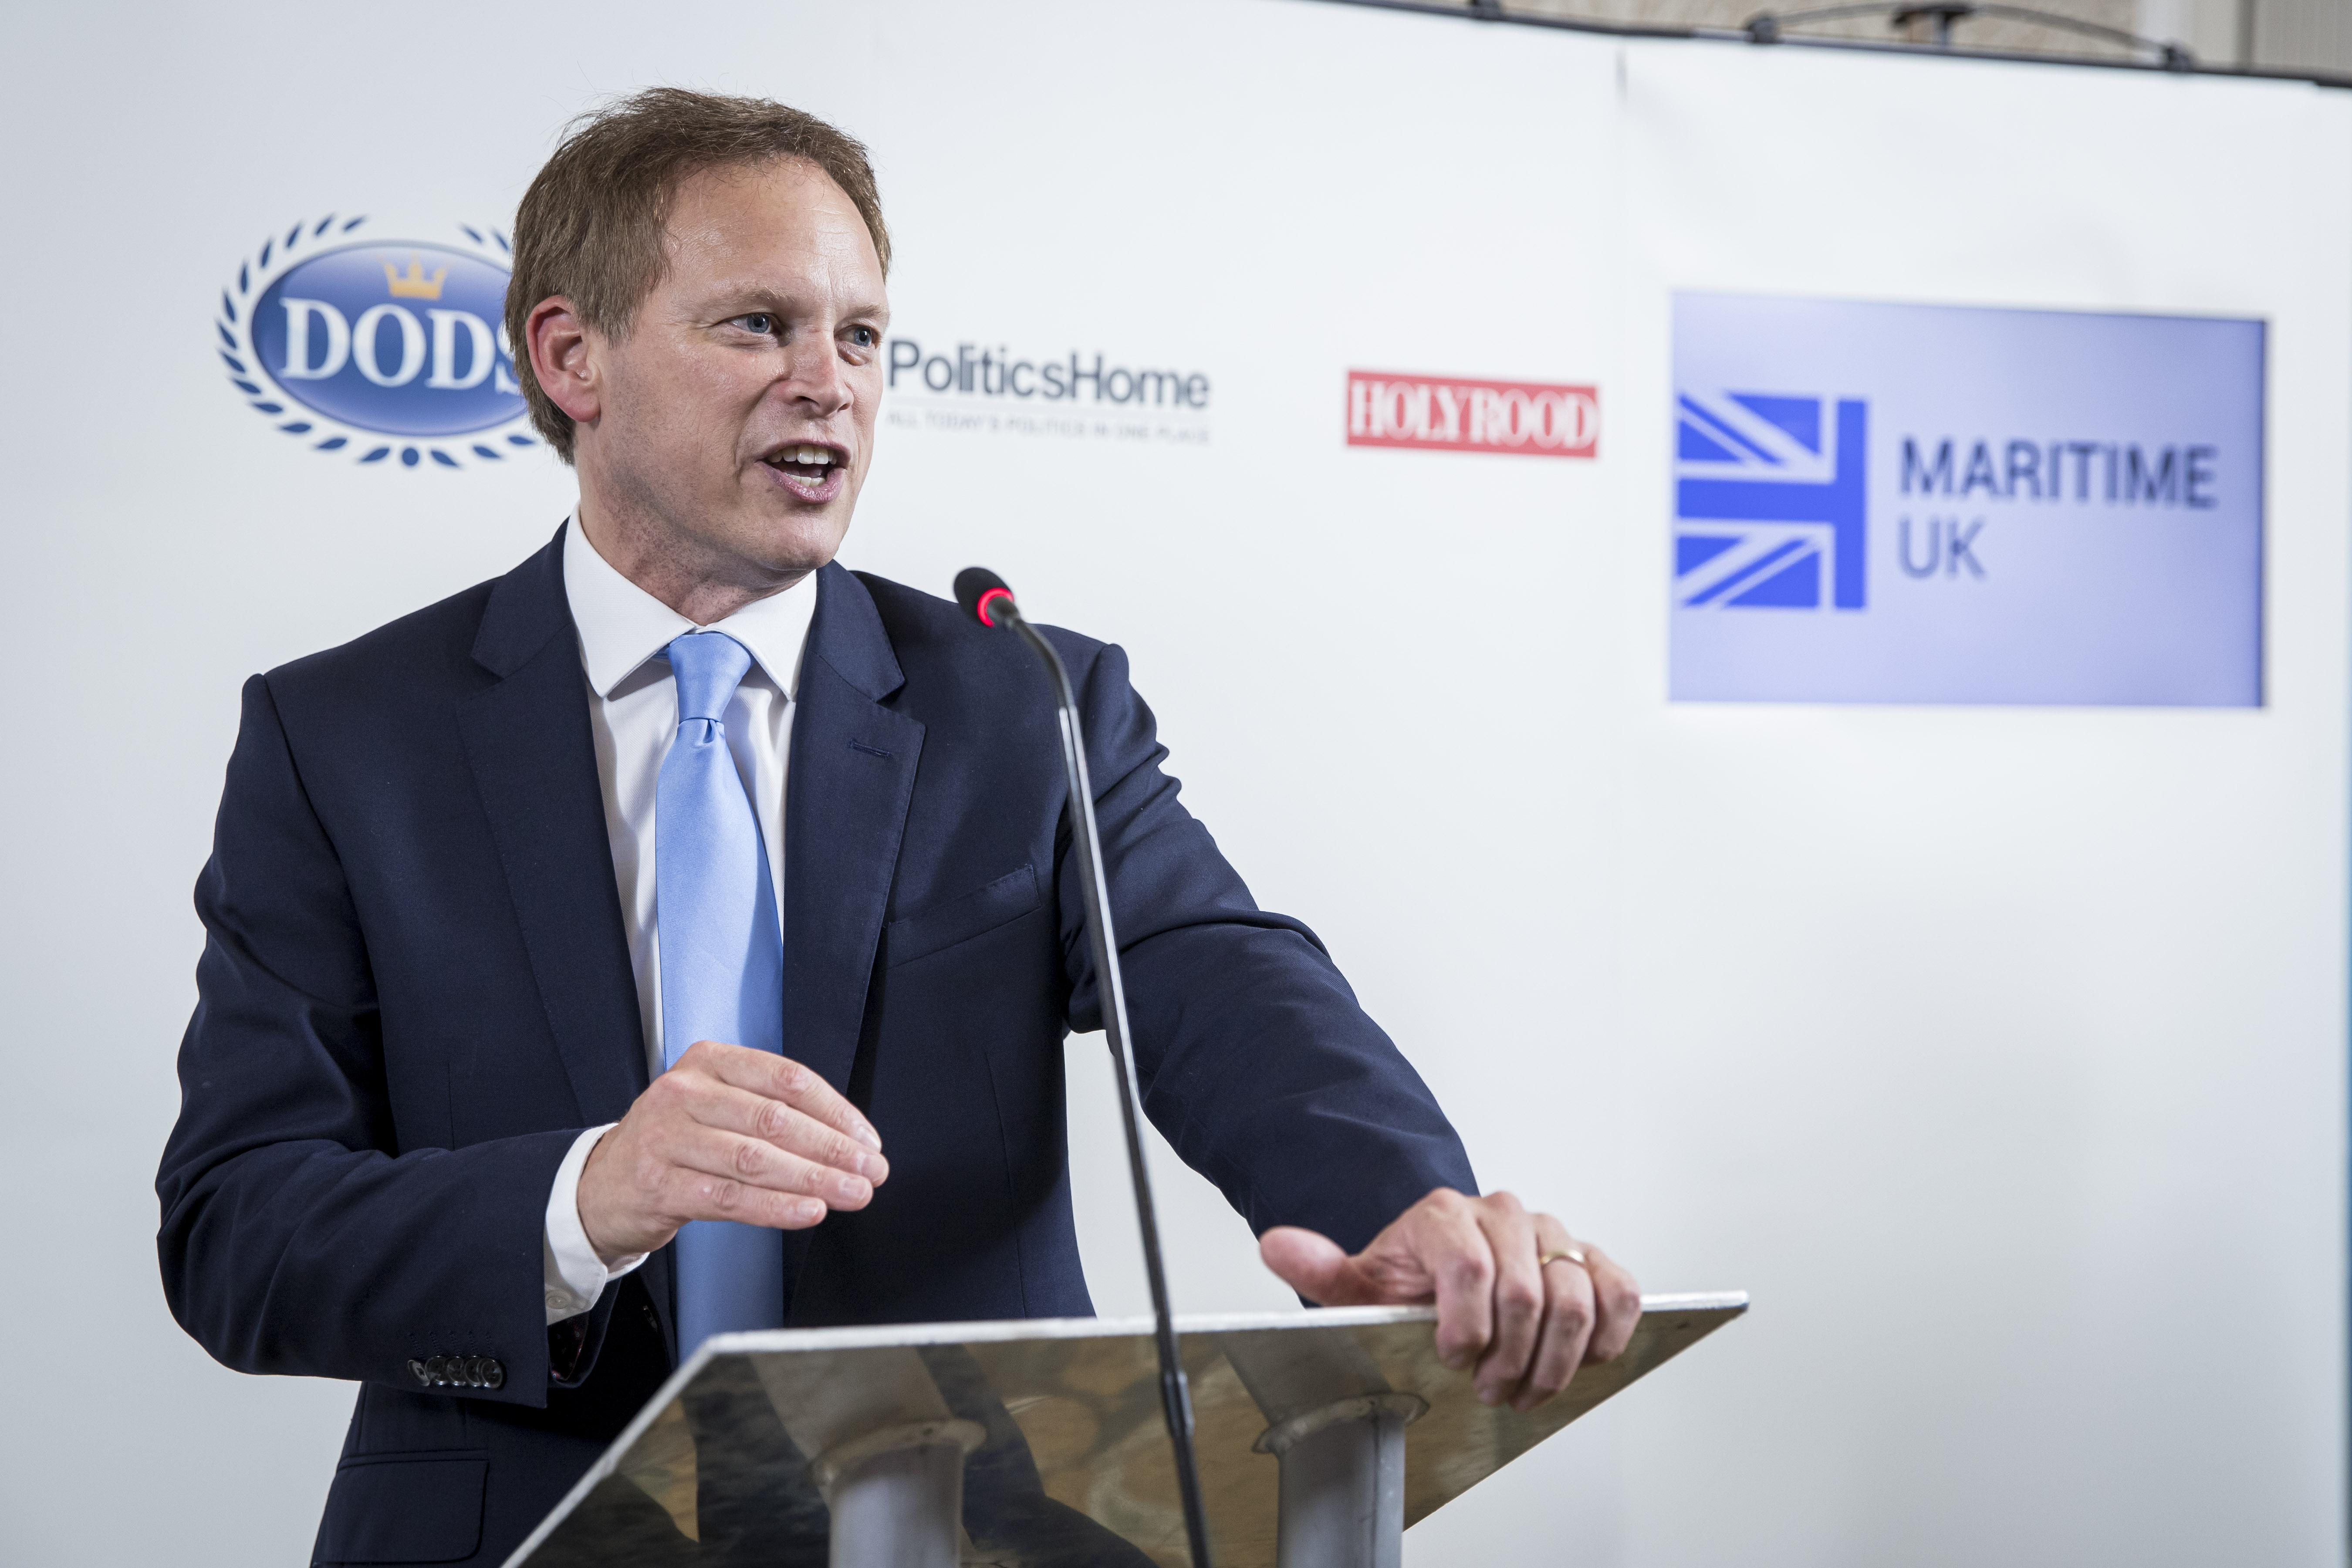 Rt Hon Grant Shapps MP speaking at The Maritime UK Reception